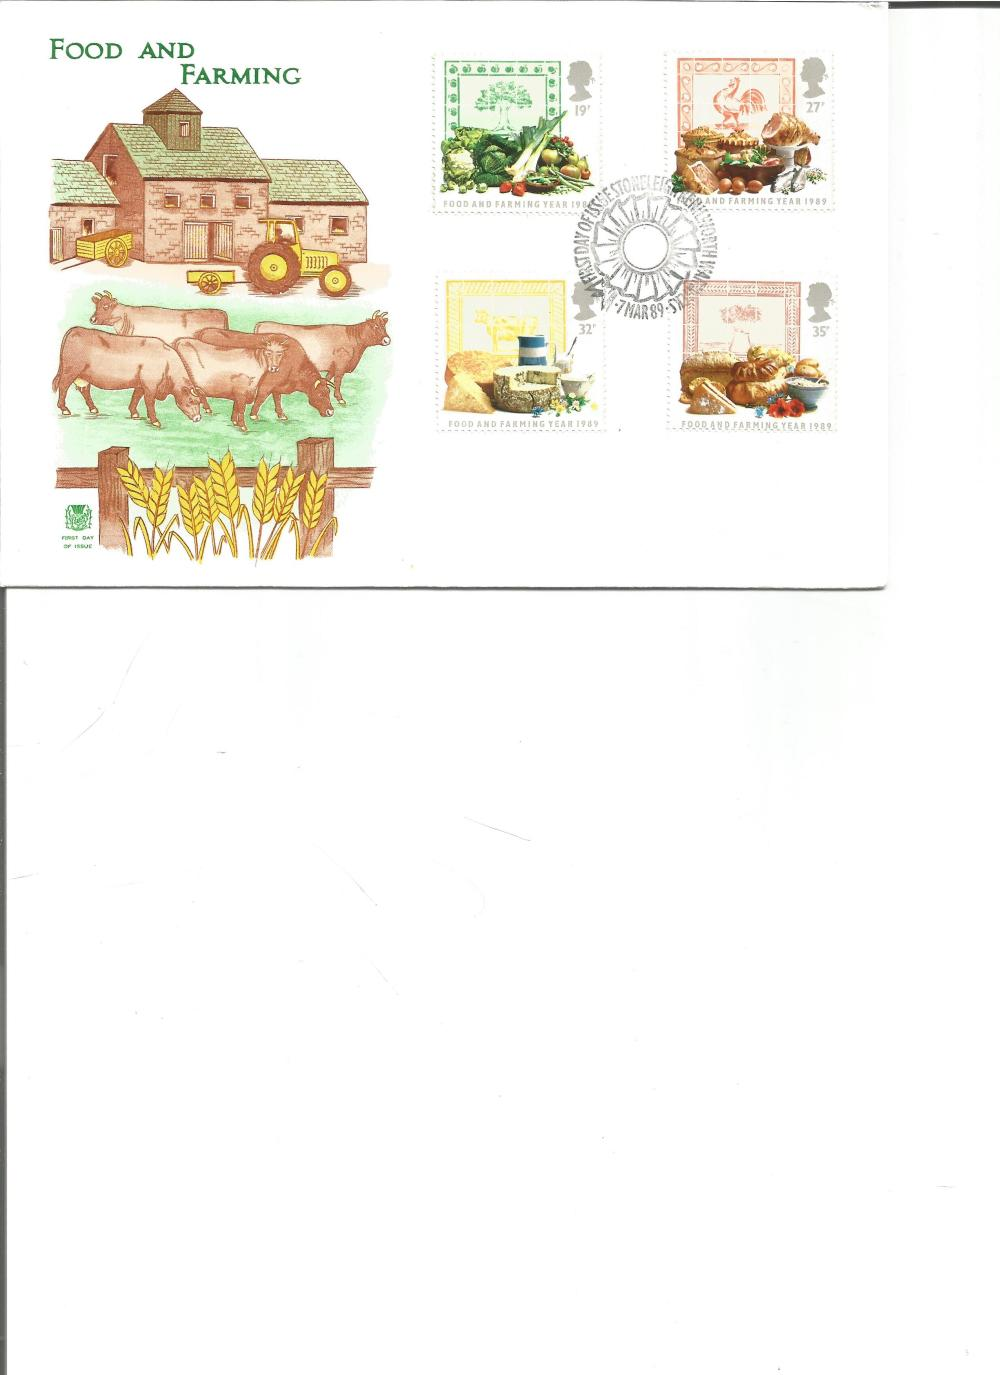 FDC Food and Farming c/w set of four commemorative stamps PM First Day of Issue Stoneleigh,